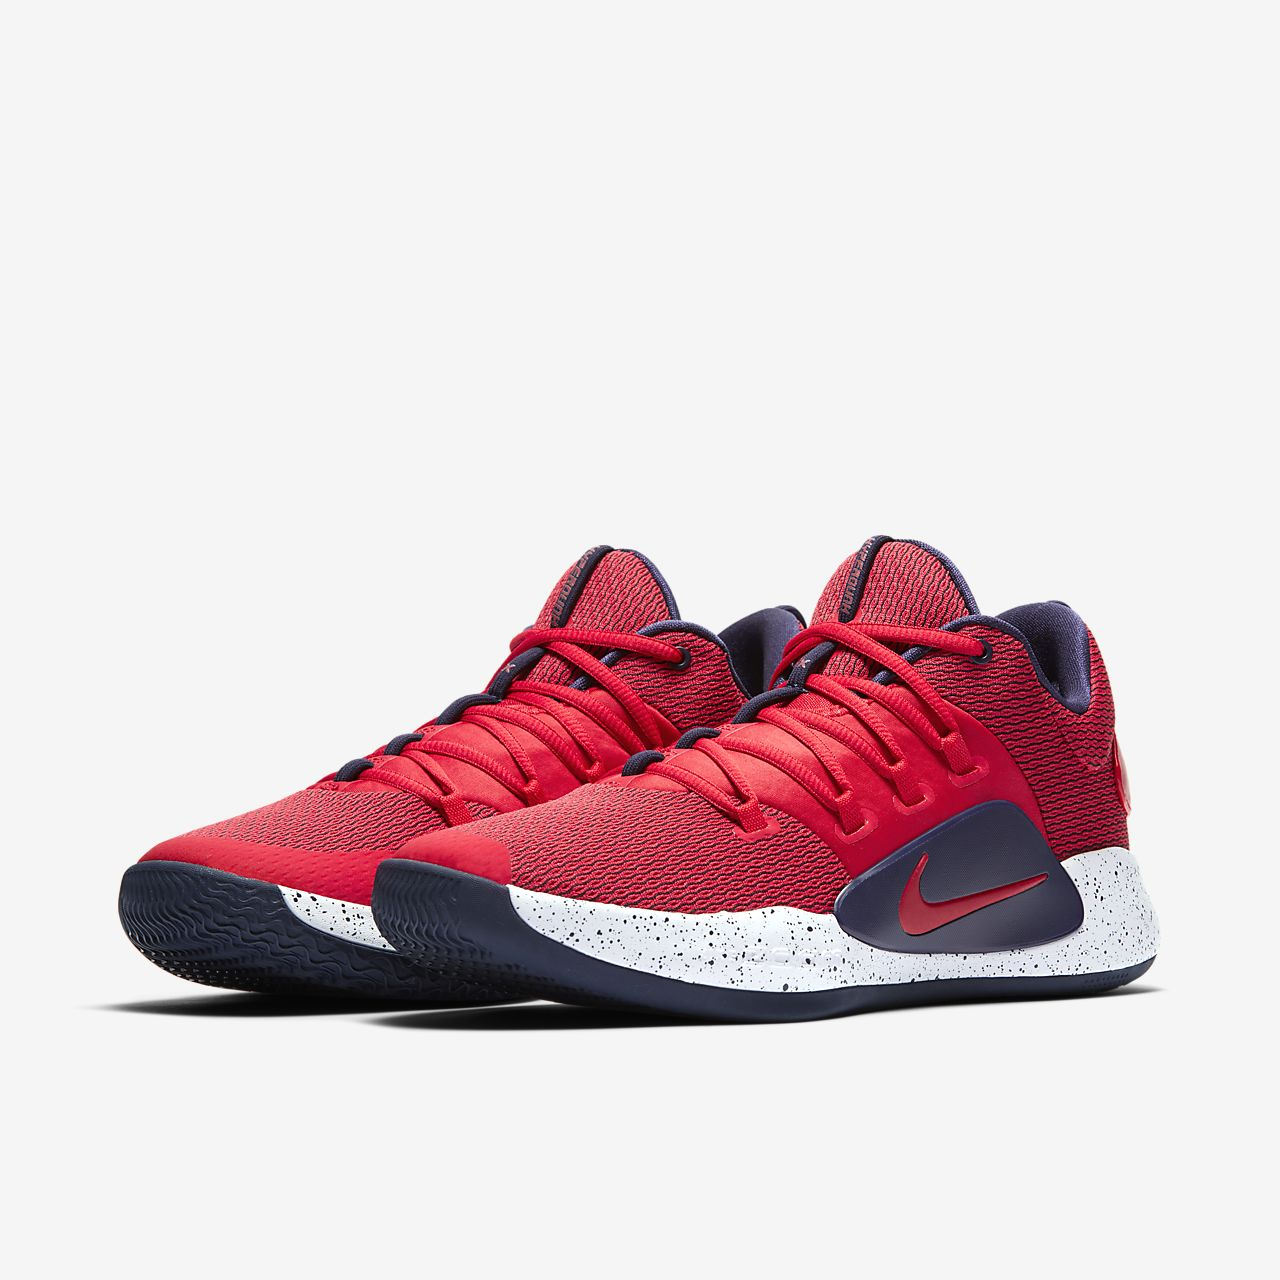 newest a56c8 710d1 ... Nike Hyperdunk X Low Herren-Basketballschuh